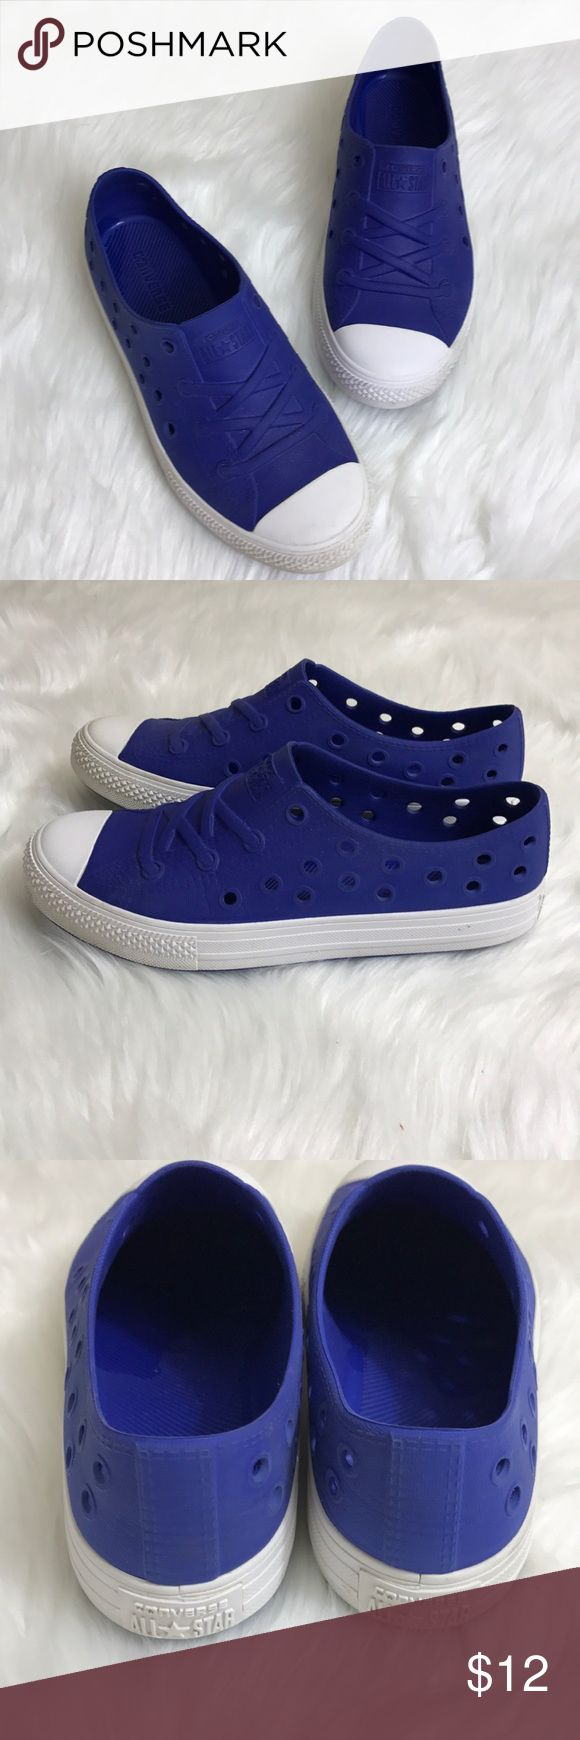 Converse Blue All Rubber Shoe Gently used with normal kid wear. All rubber blue Converse shoes with holes on sides. Great shoes for beach, water park or anywhere else your little one likes to get wet. No laces so they are easy to get on and off! Converse Shoes